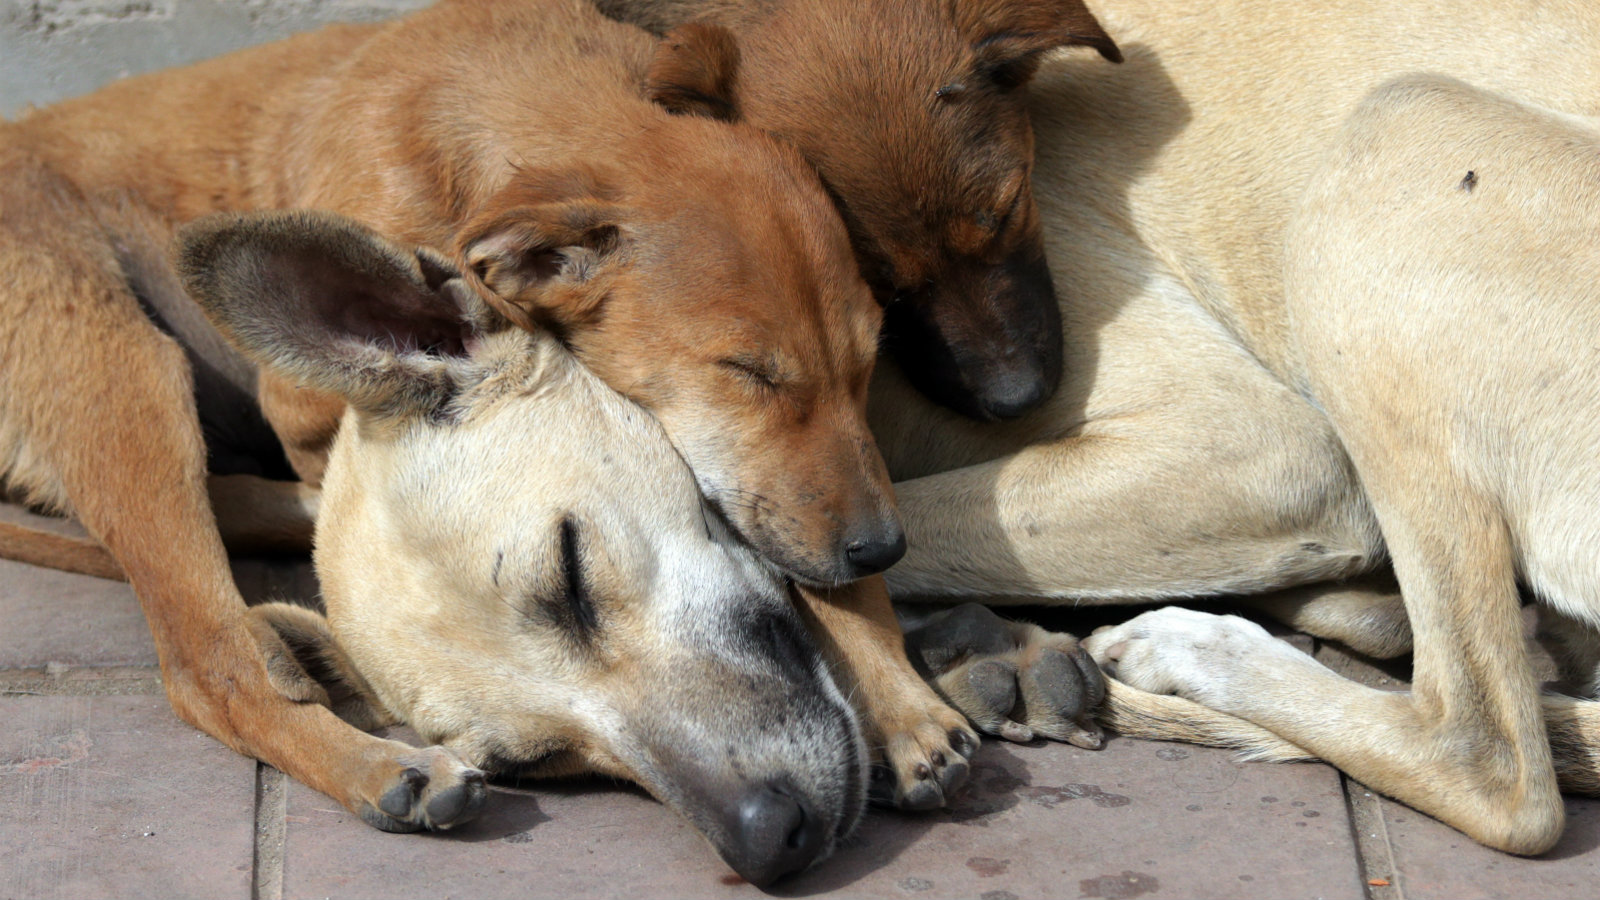 Puppies cuddle up with their mother as they doze in the sun a roadside in Amritsar, India, 28 February 2017.